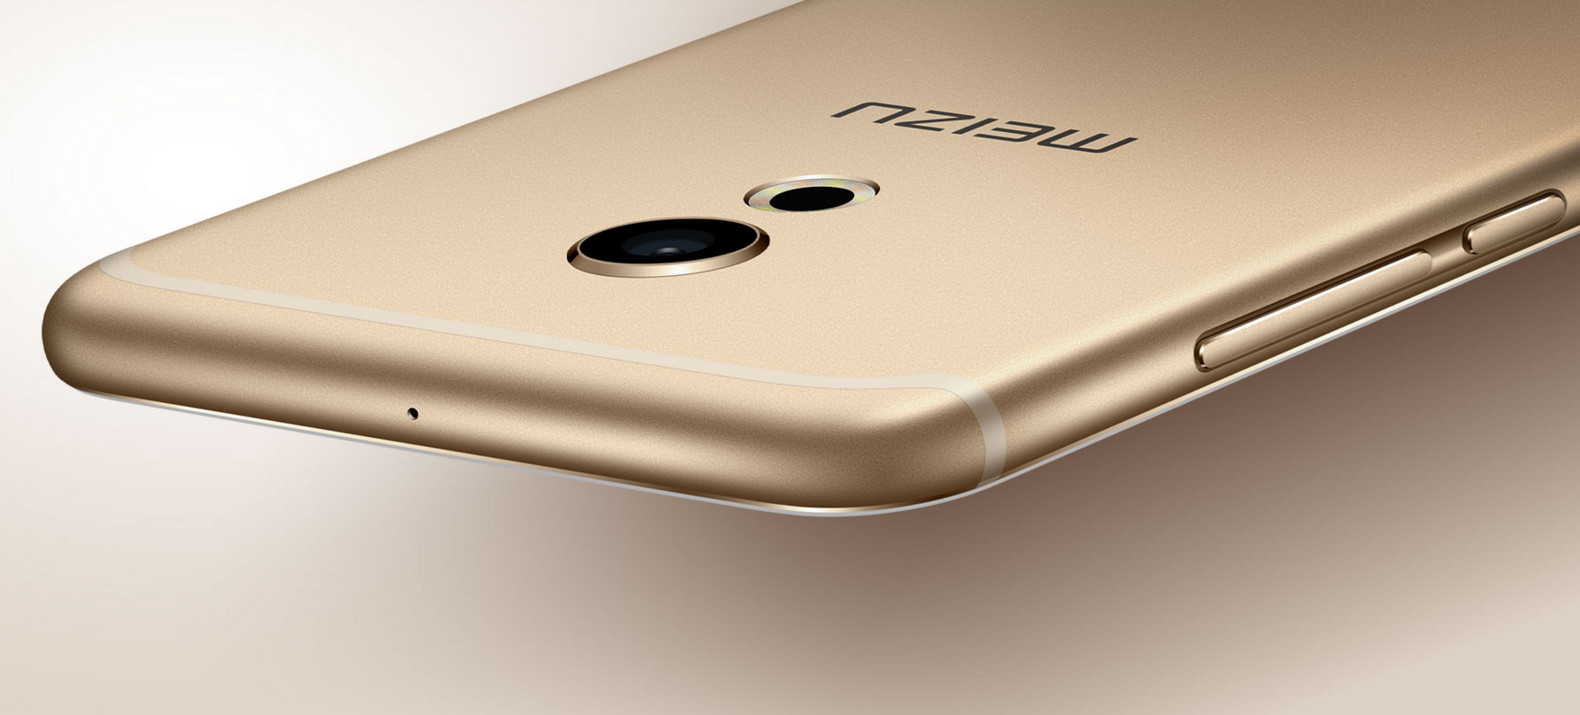 Meizu-Pro-6-all-new-features-and-official-images (16)